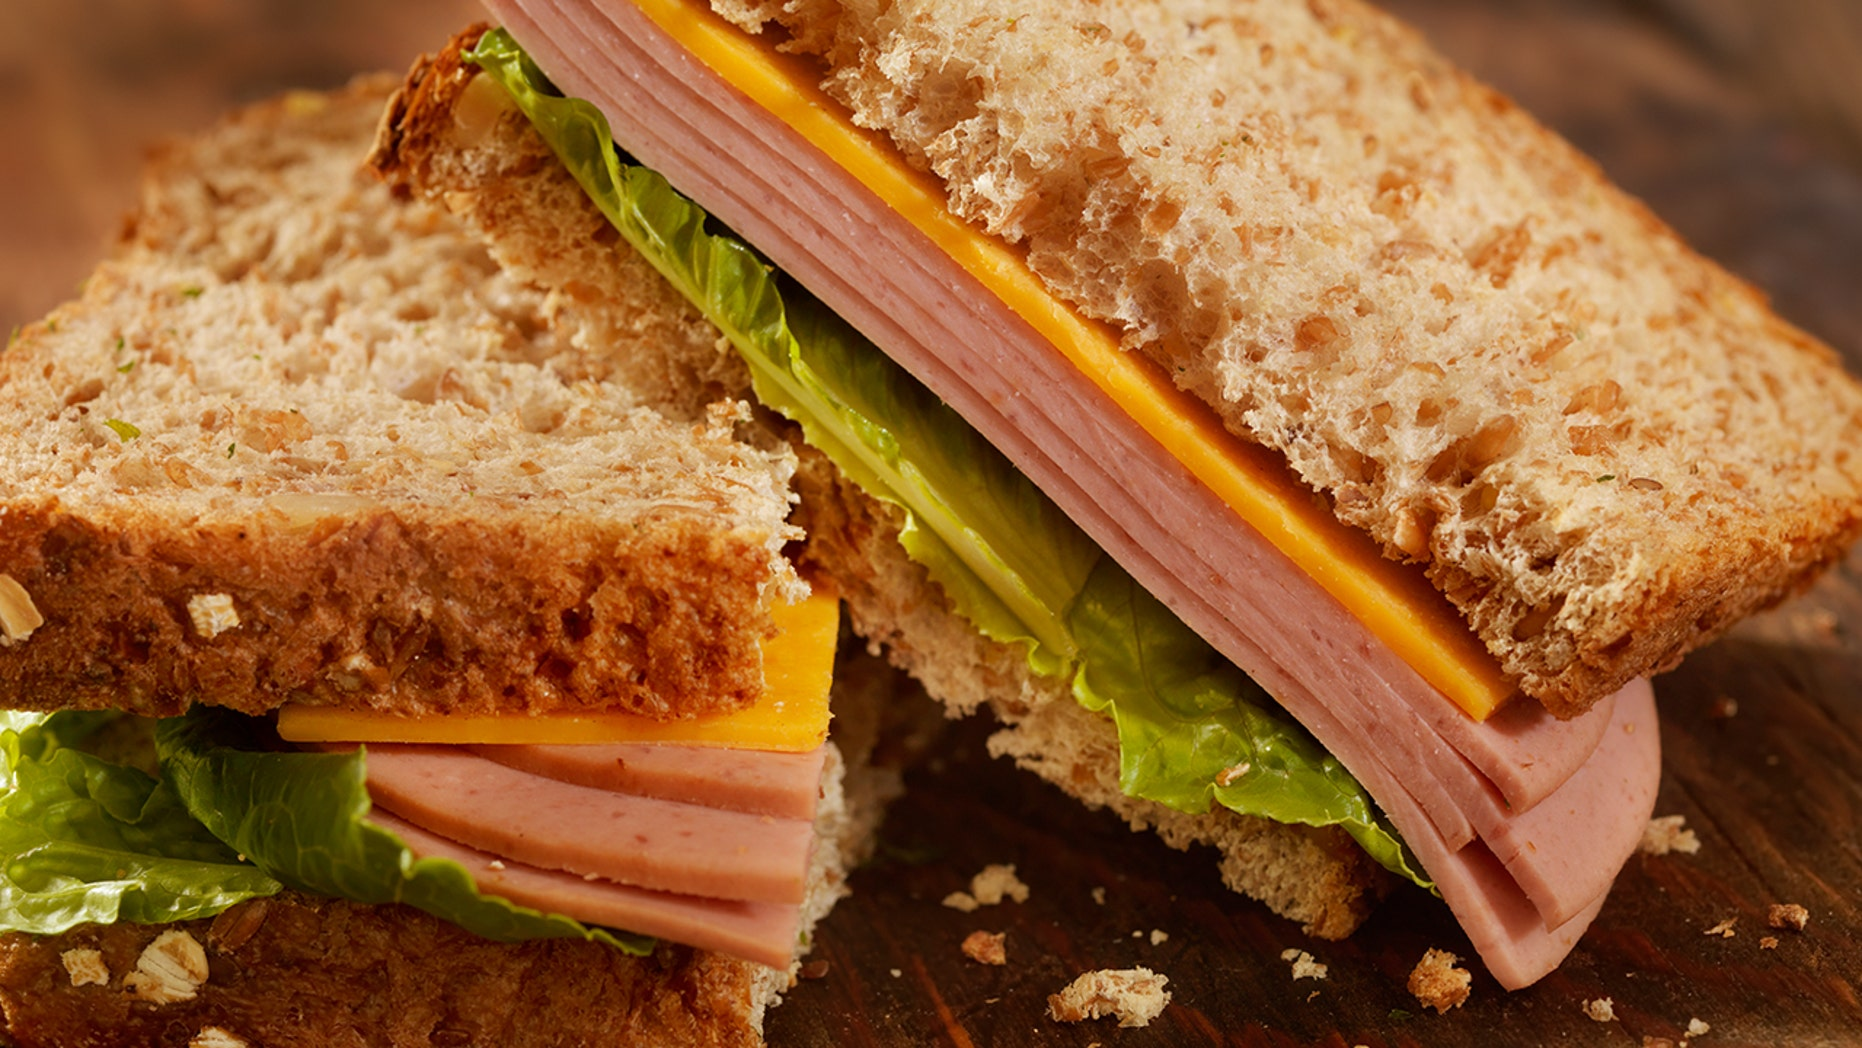 A picky customer sent her sandwich back because it wasn't cut evenly.